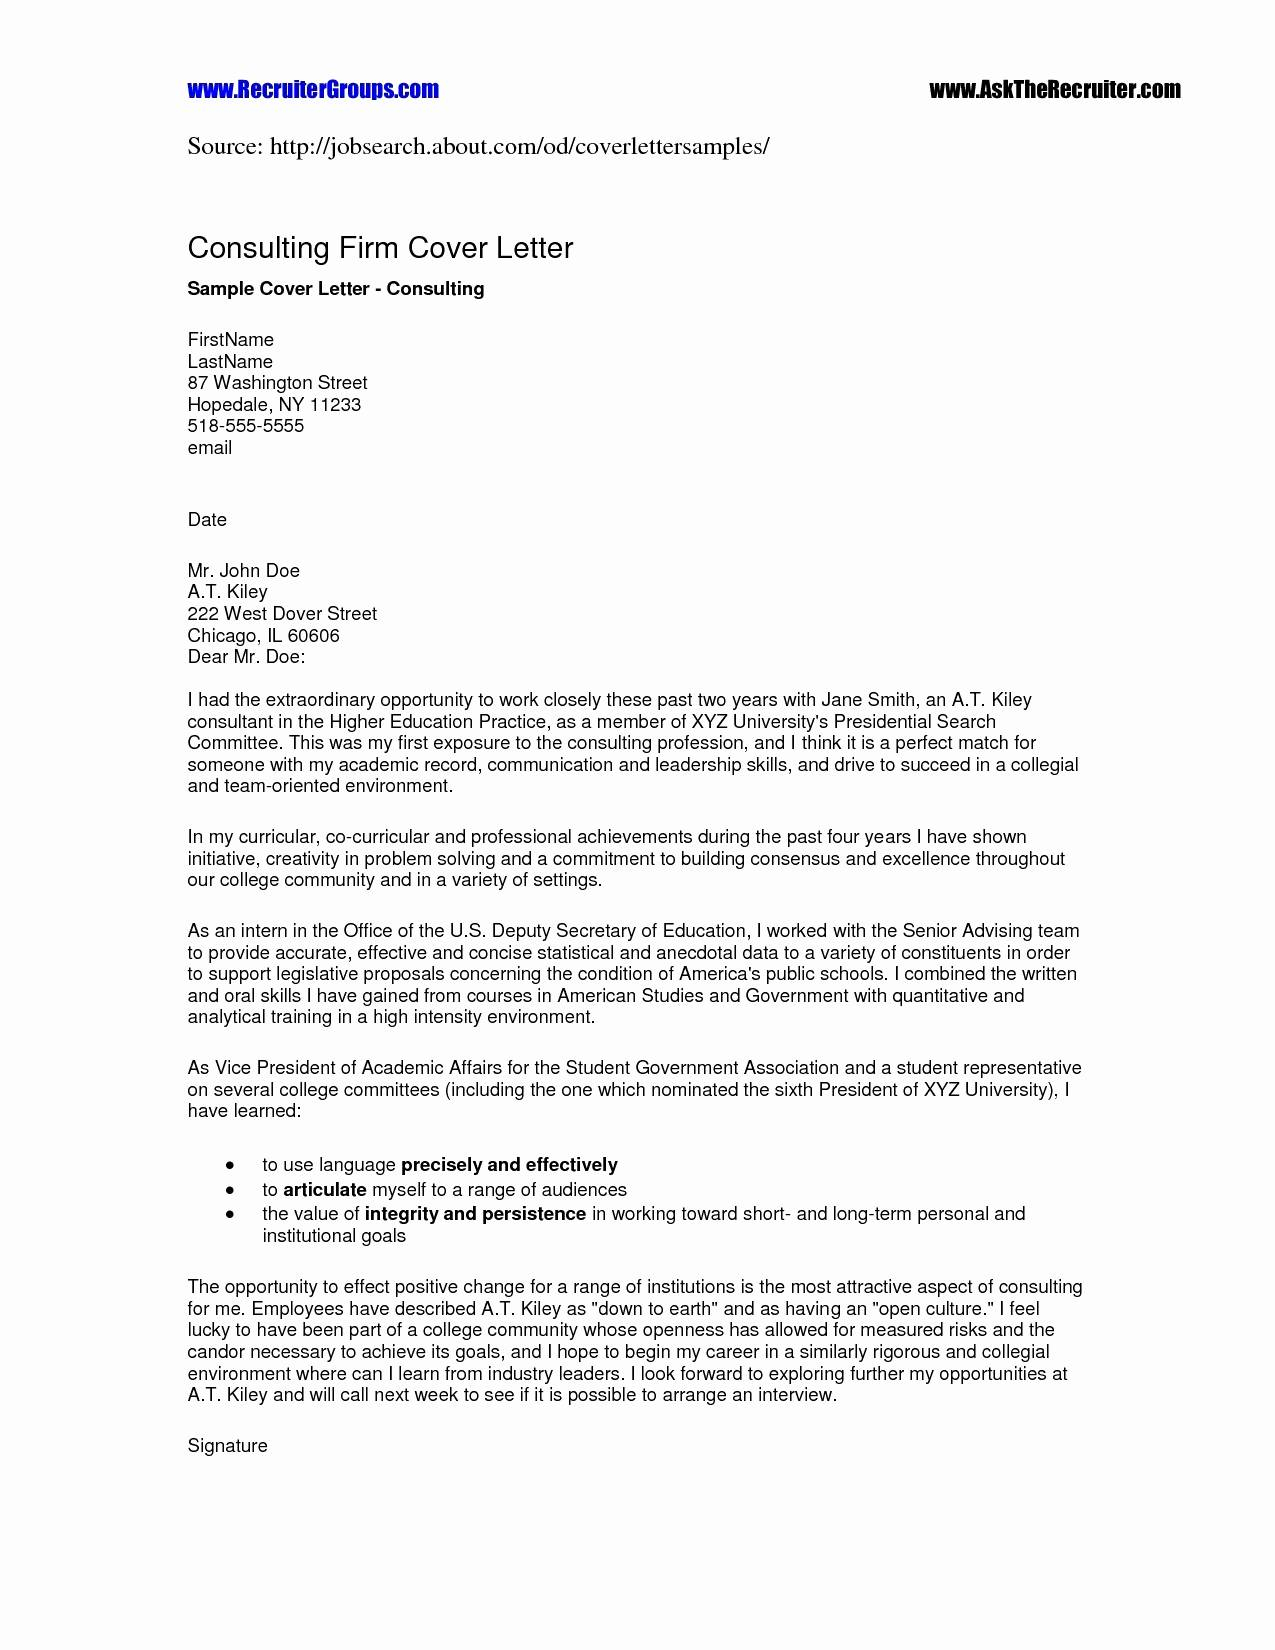 Collection Agency Cease and Desist Letter Template - Cease and Desist Letter Template for Debt Collectors Fresh 20 Debt